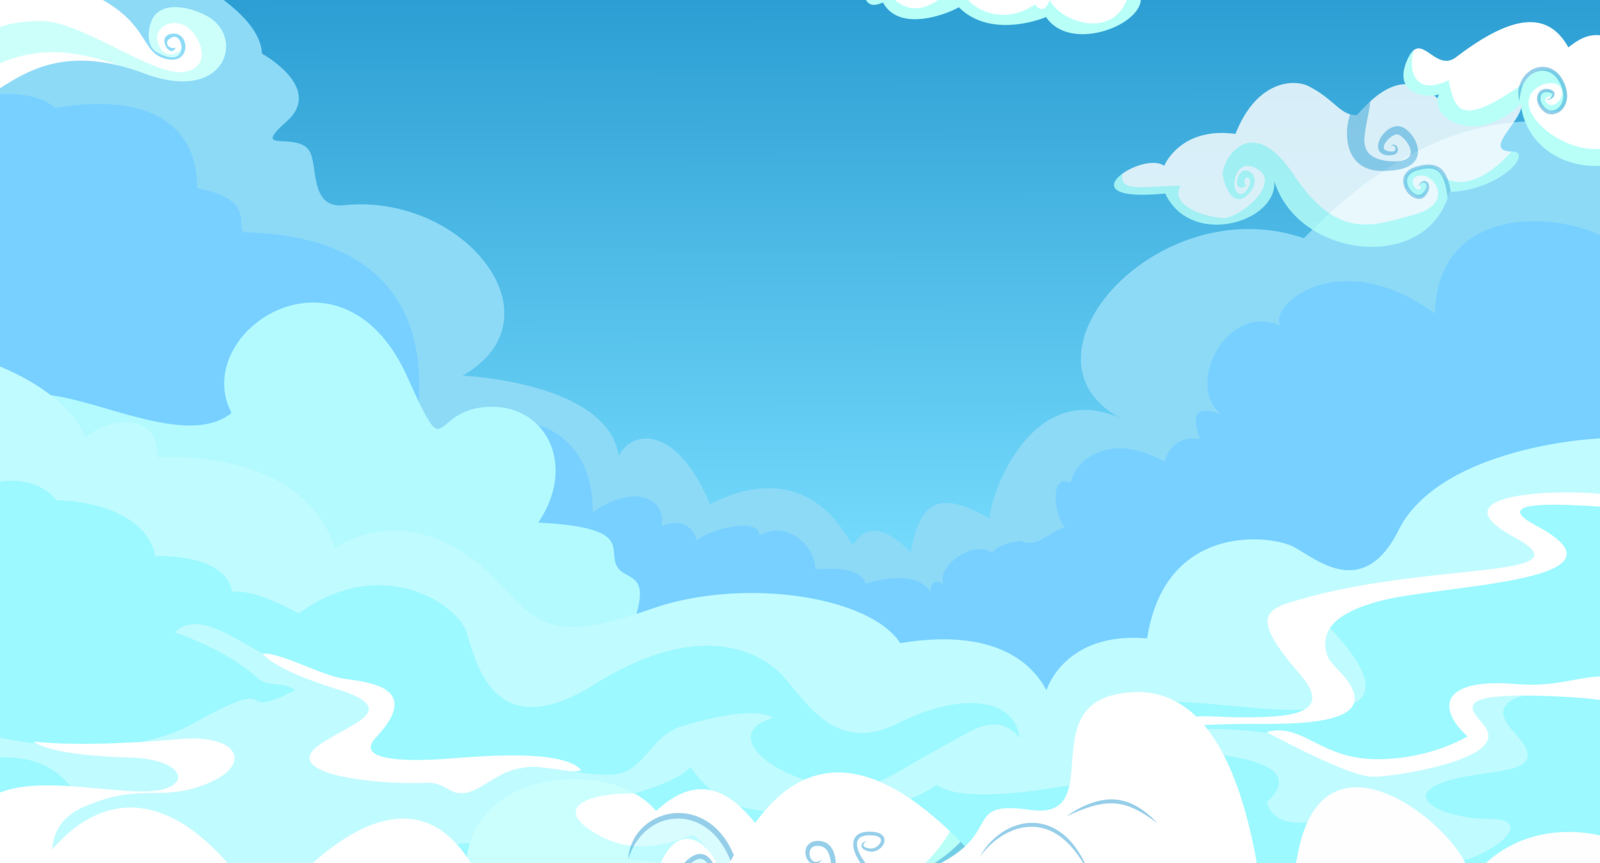 Free Sky Cliparts, Download Free Clip Art, Free Clip Art on